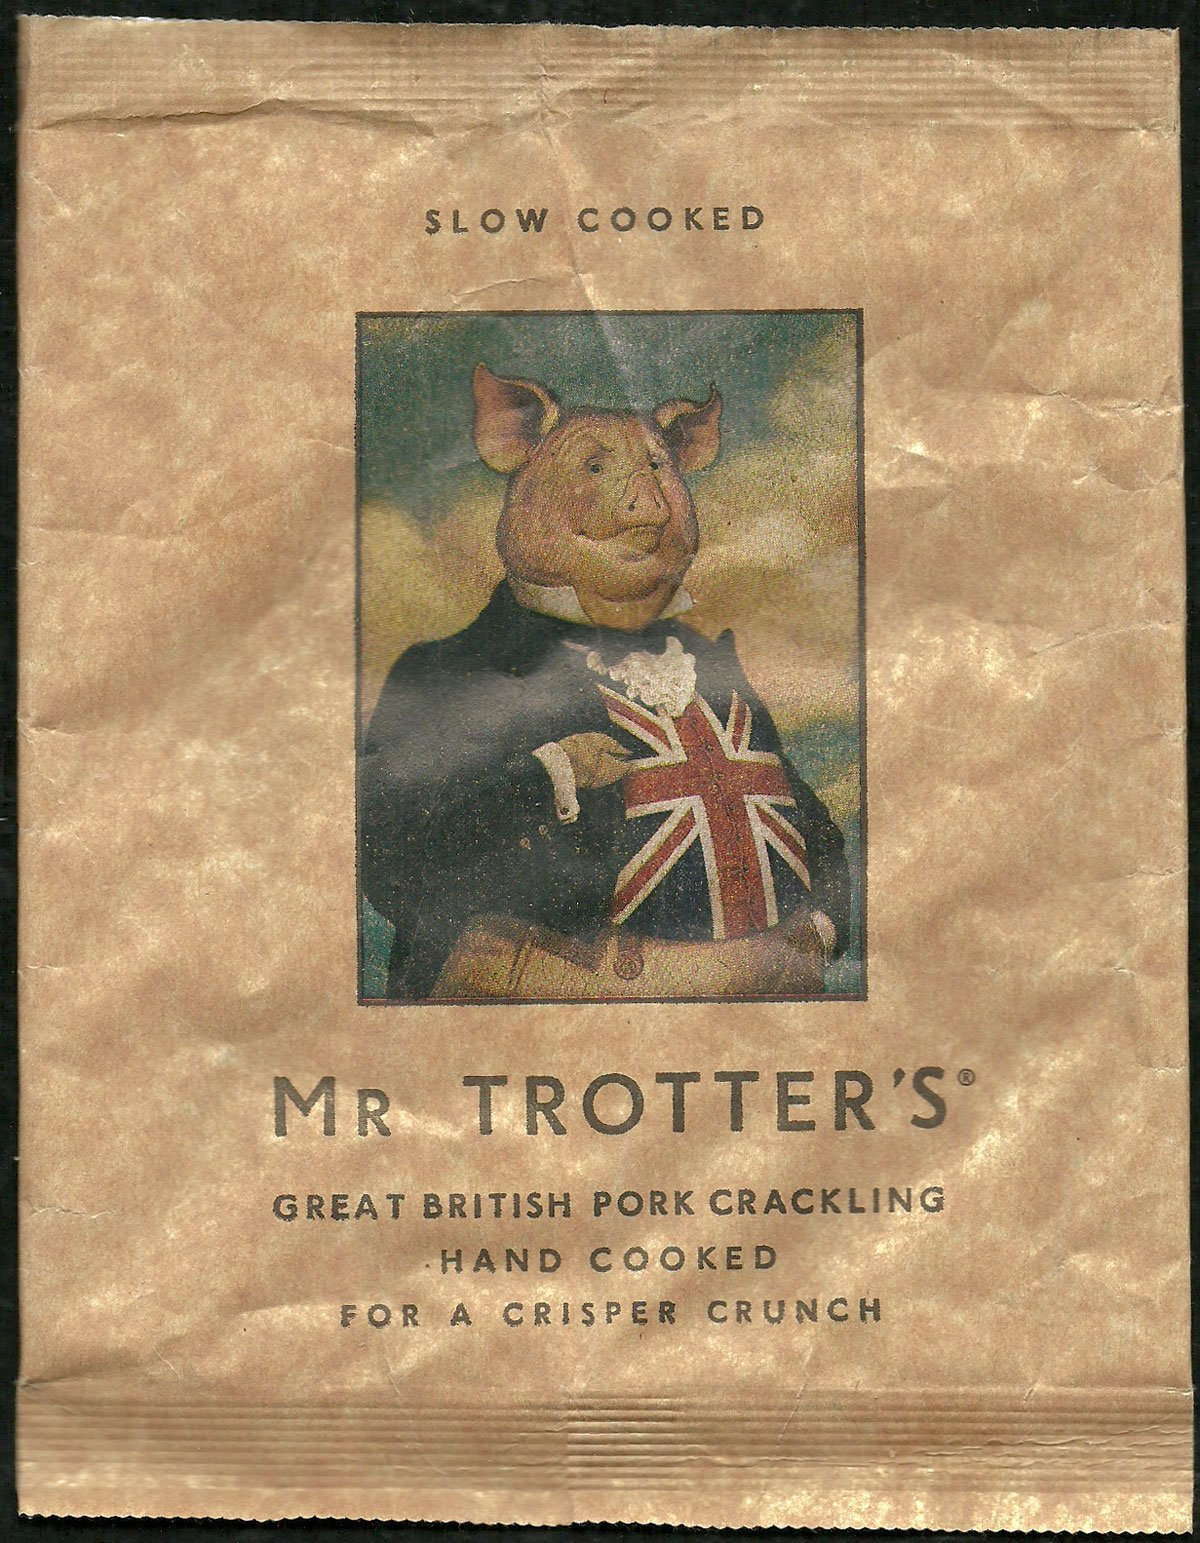 Mr Trotters Great British Pork Crackling Review2 - Mr Trotters, Great British Pork Crackling Review